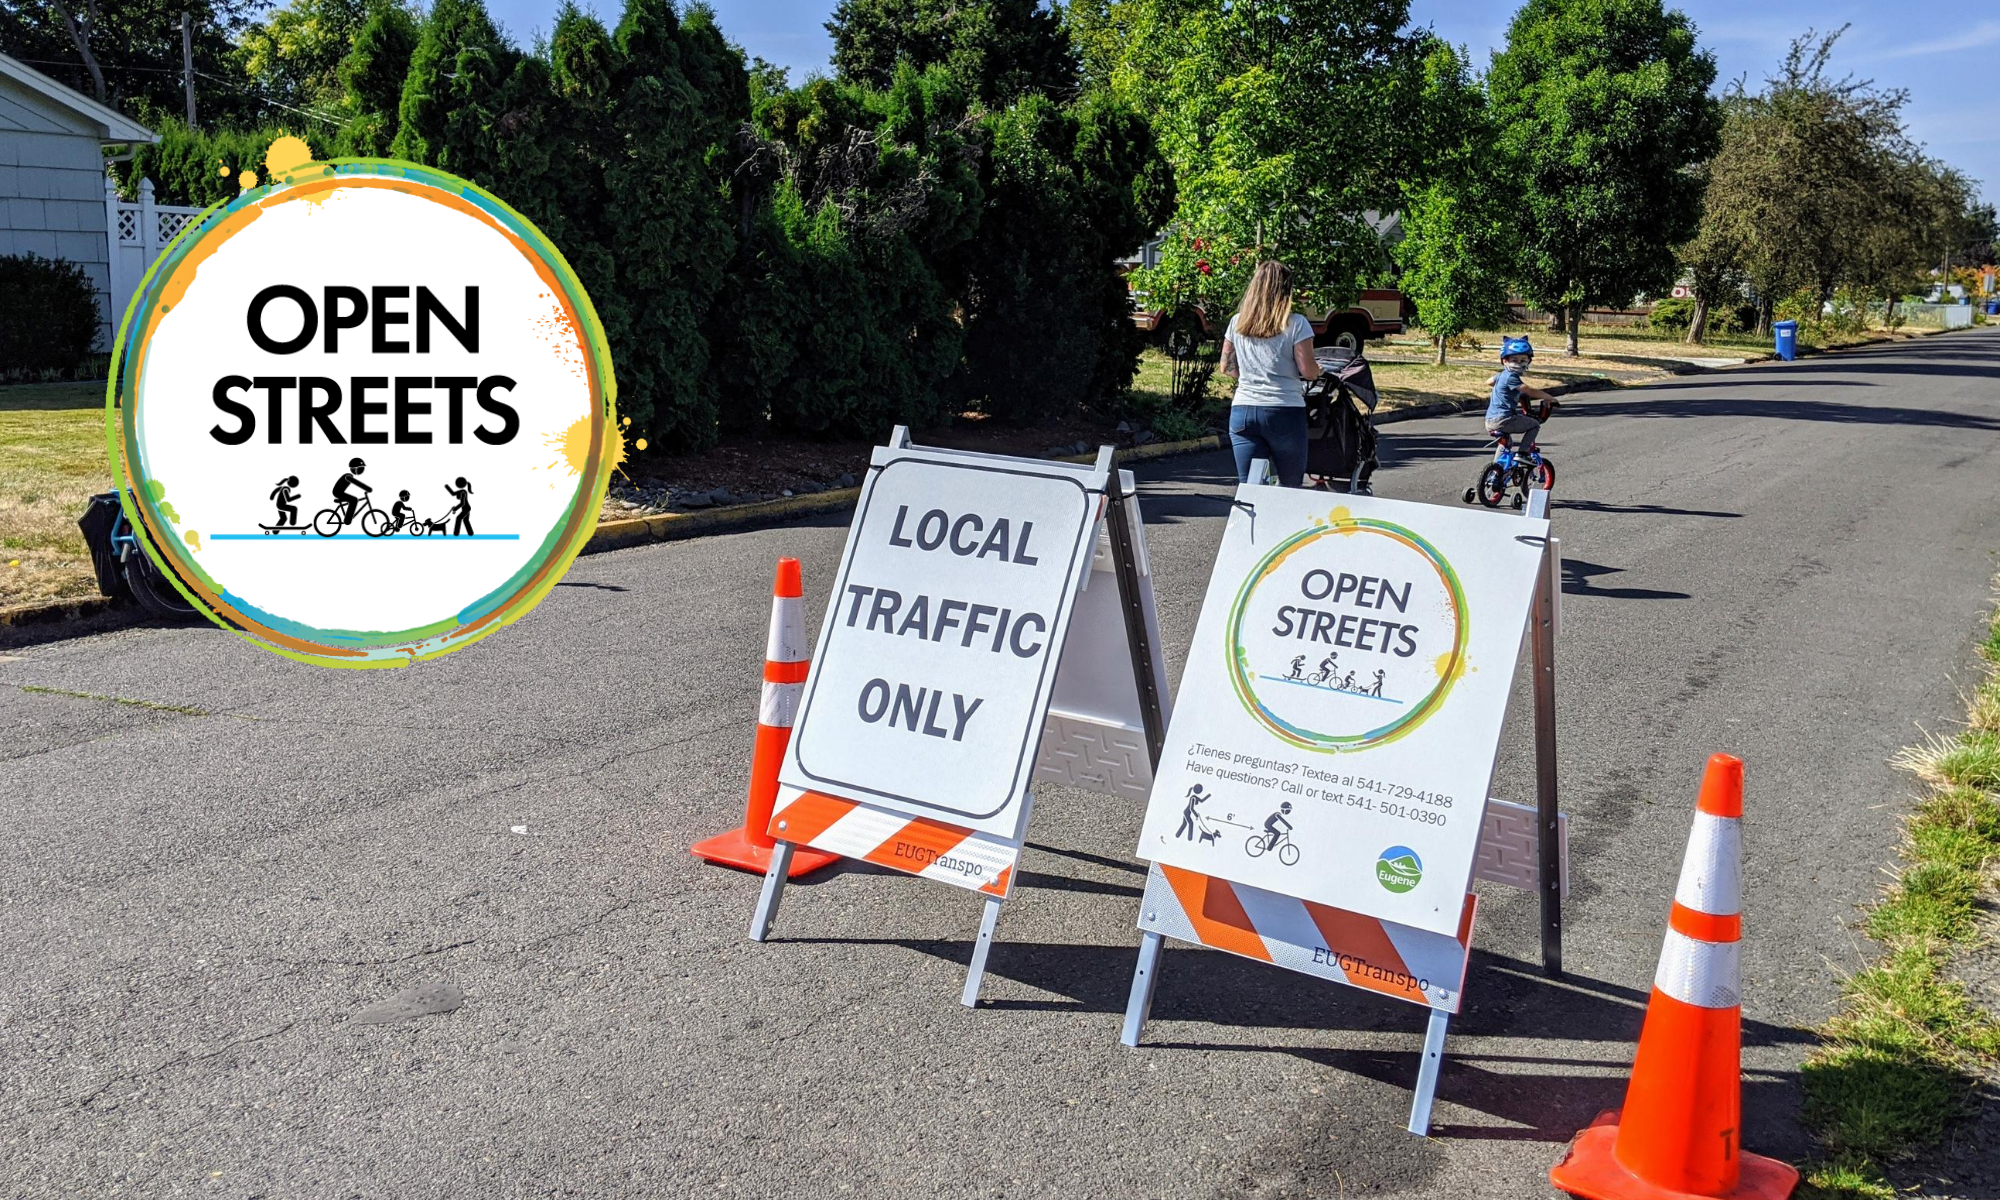 woman with baby carriage and young boy on a bike walking/rolling by the Open Streets sign